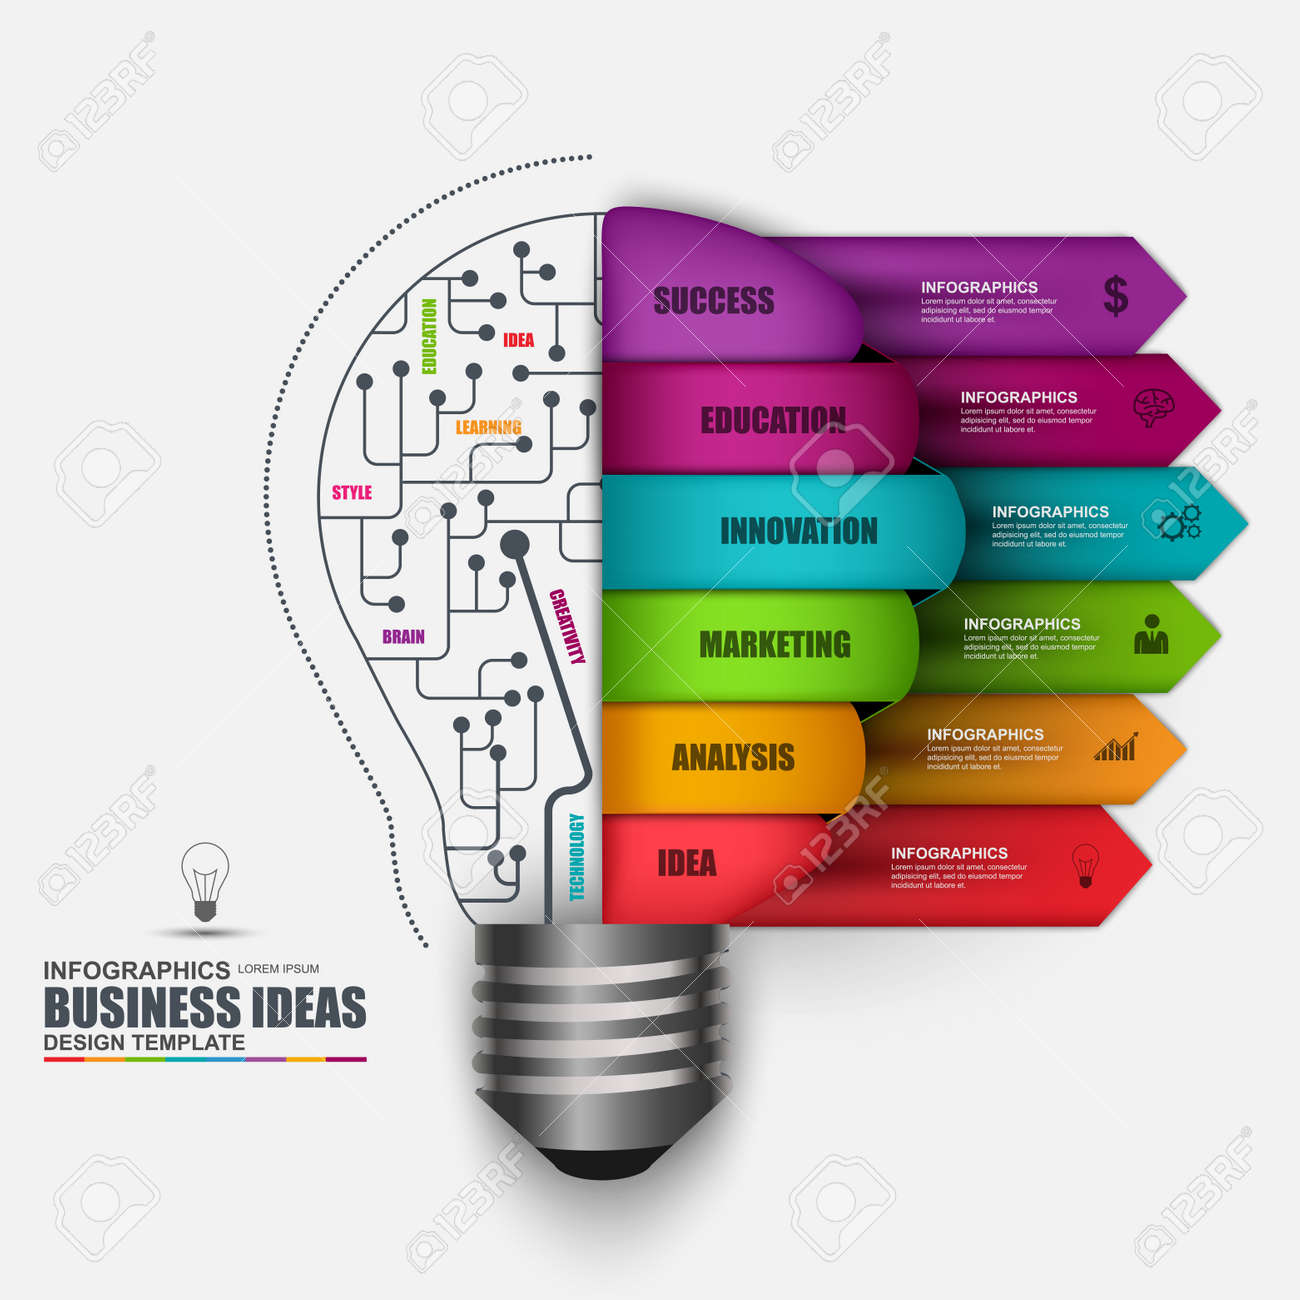 Infographic Business Light Bulb Vector Design Template Can Be Idea With For Creative Diagram Used Workflow Processes Startup